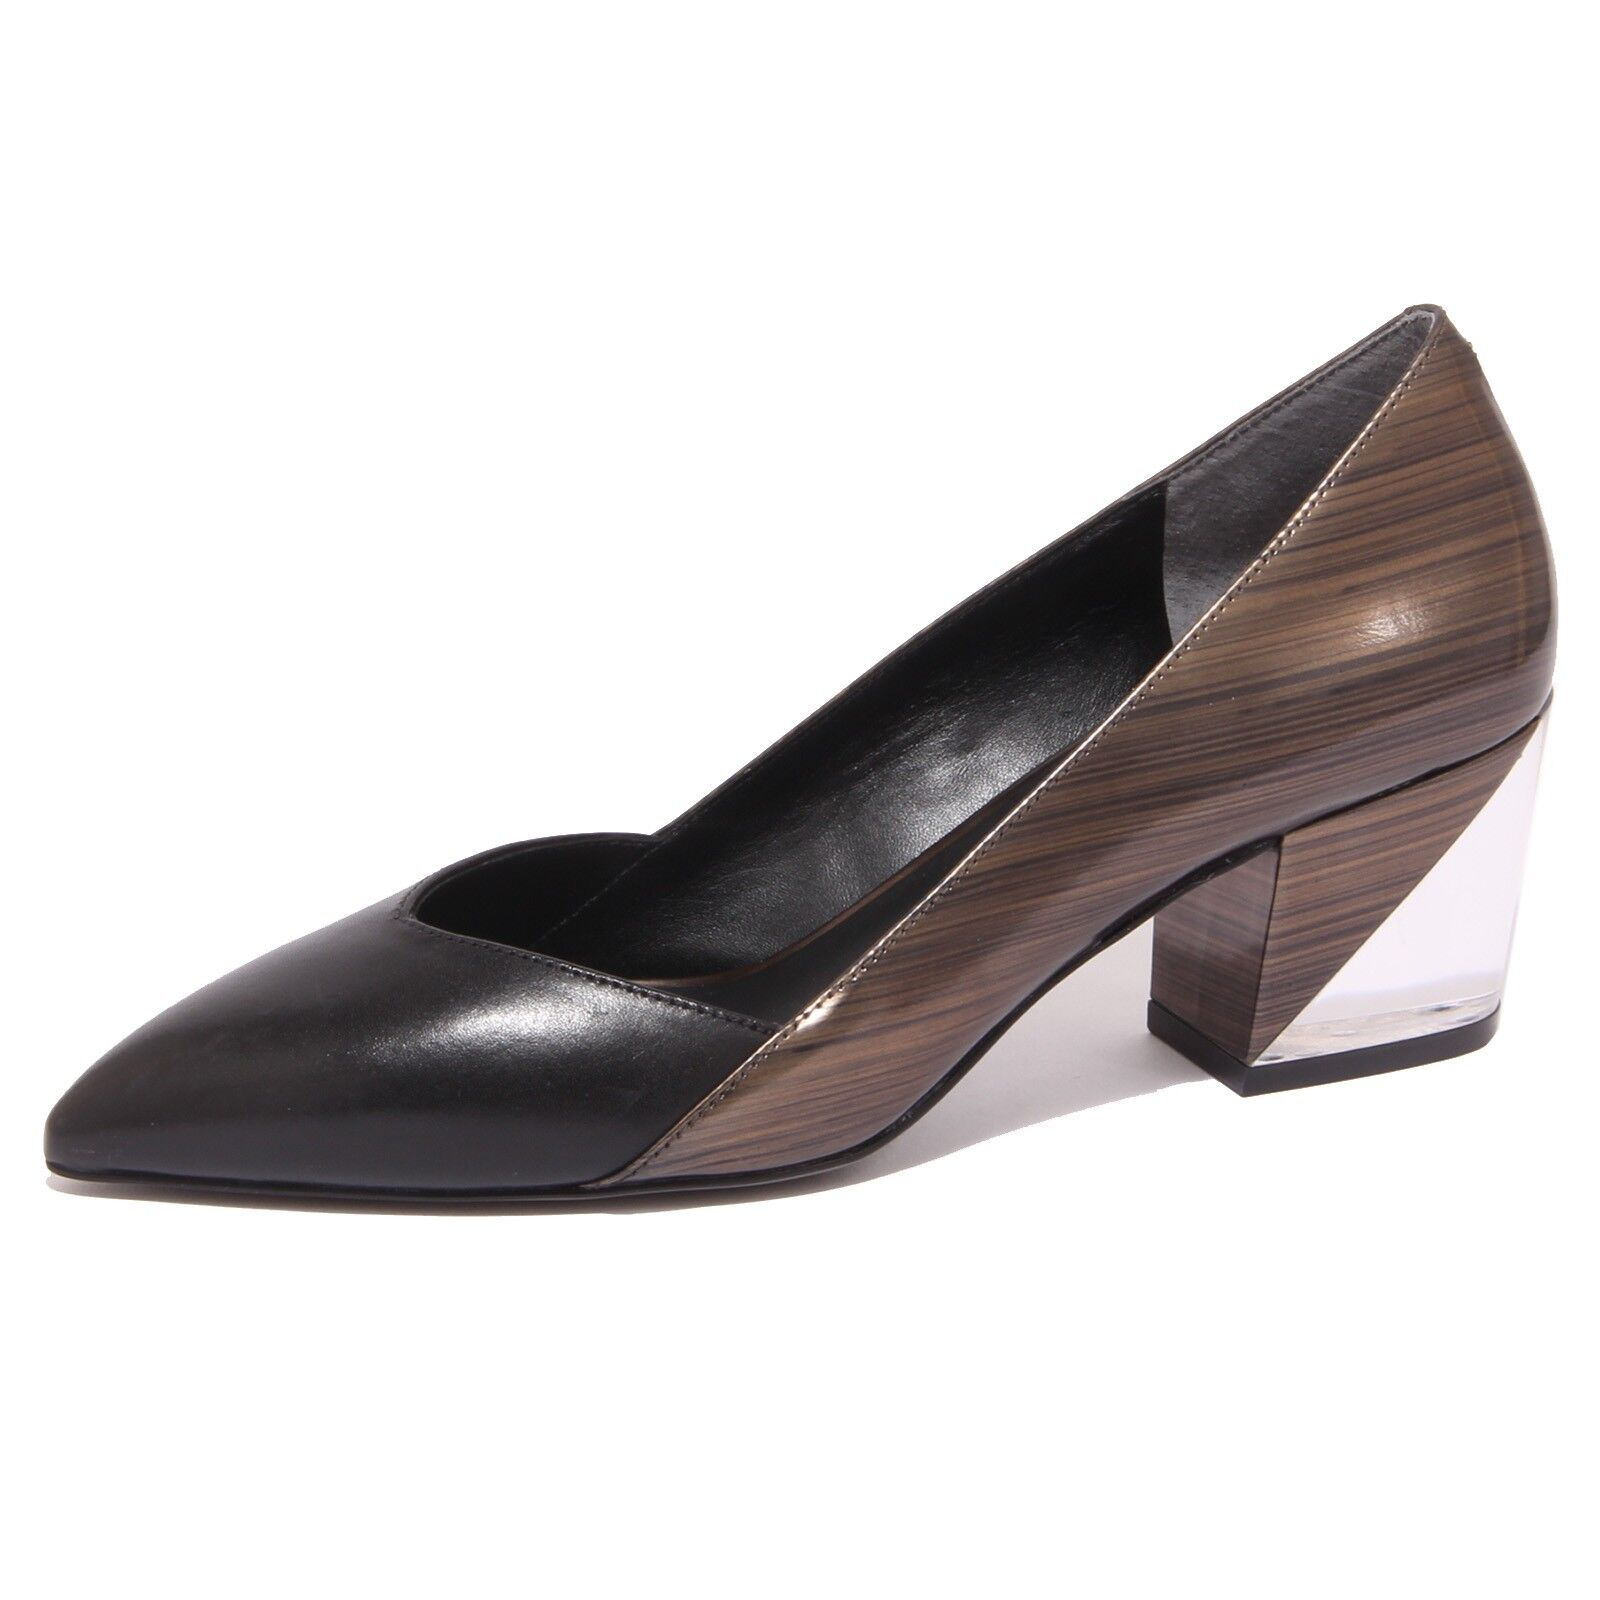 8784P decollete WHAT FOR shoe nero/bronzo scarpa donna shoe FOR woman 08b2c1